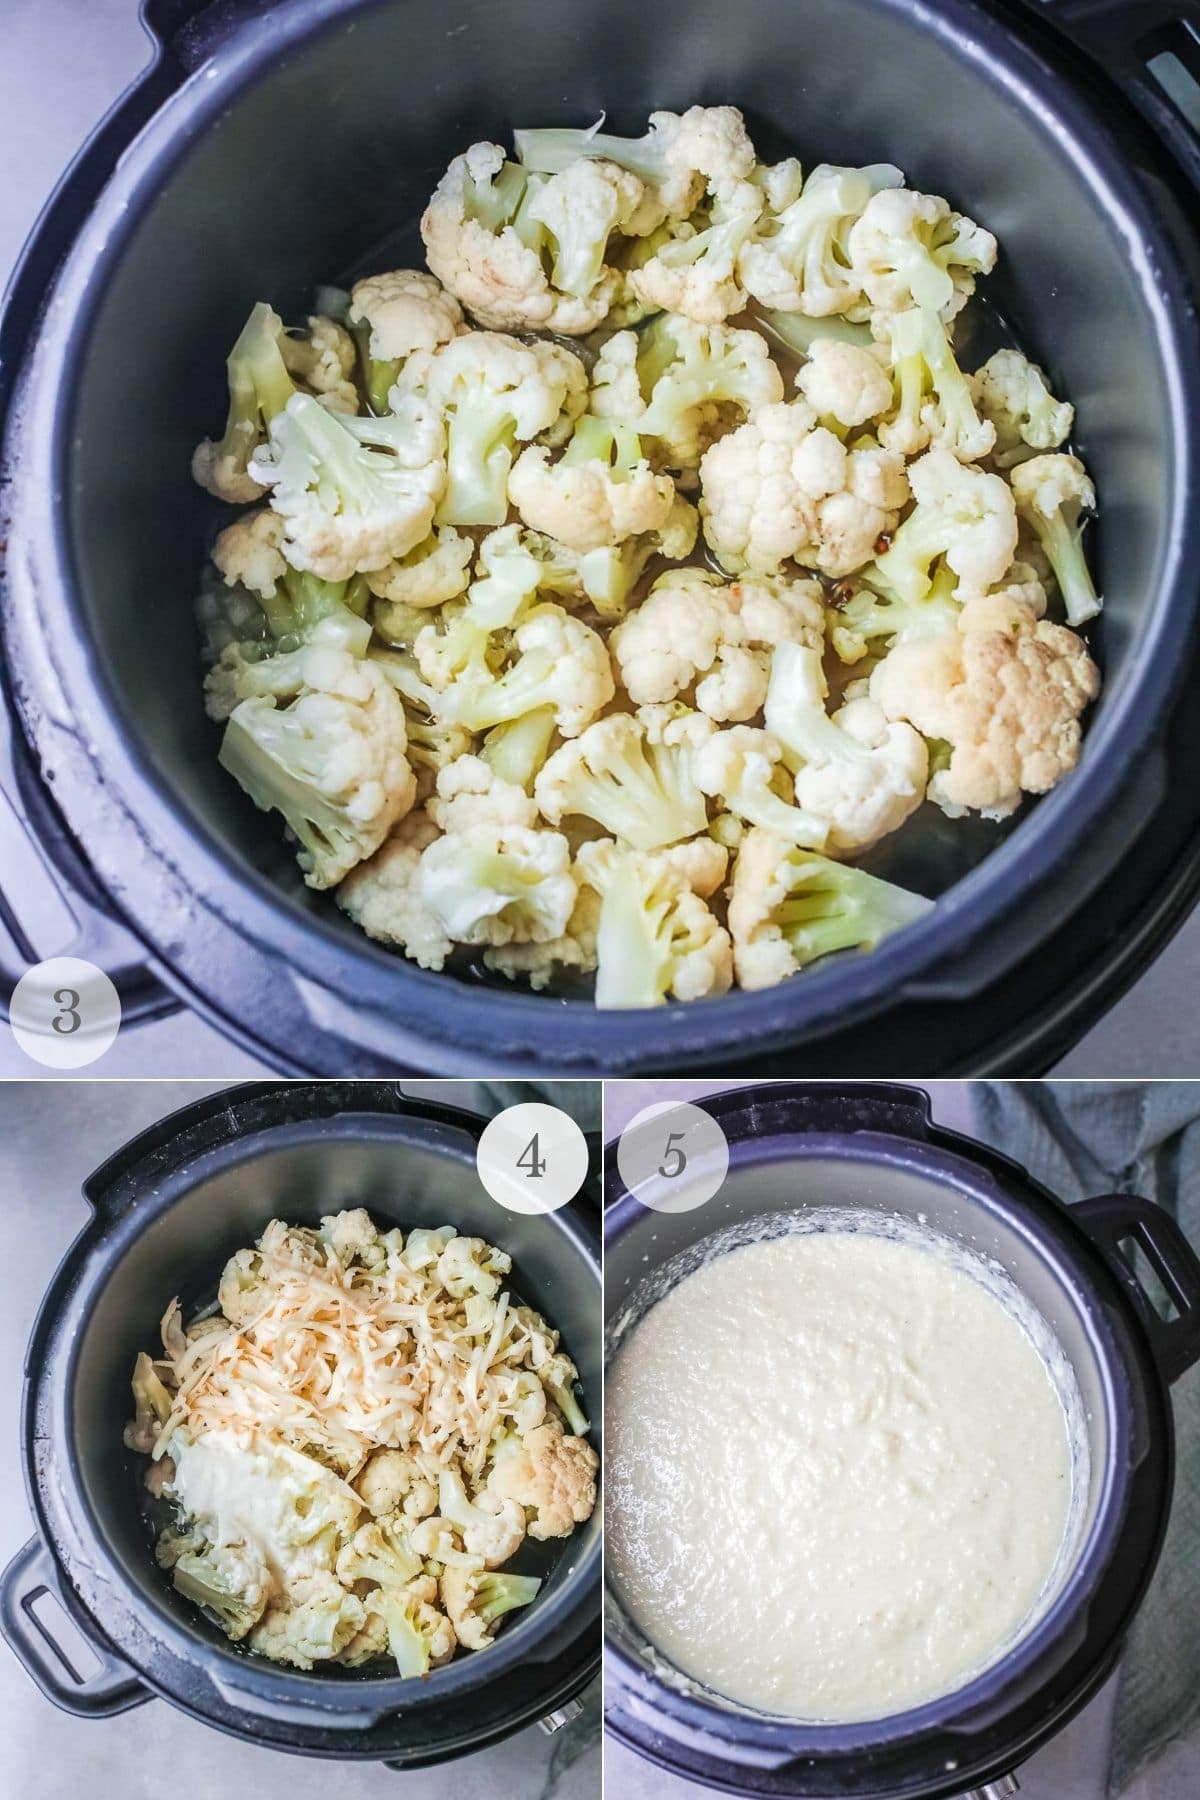 cauliflower cheese soup recipe steps 3-5